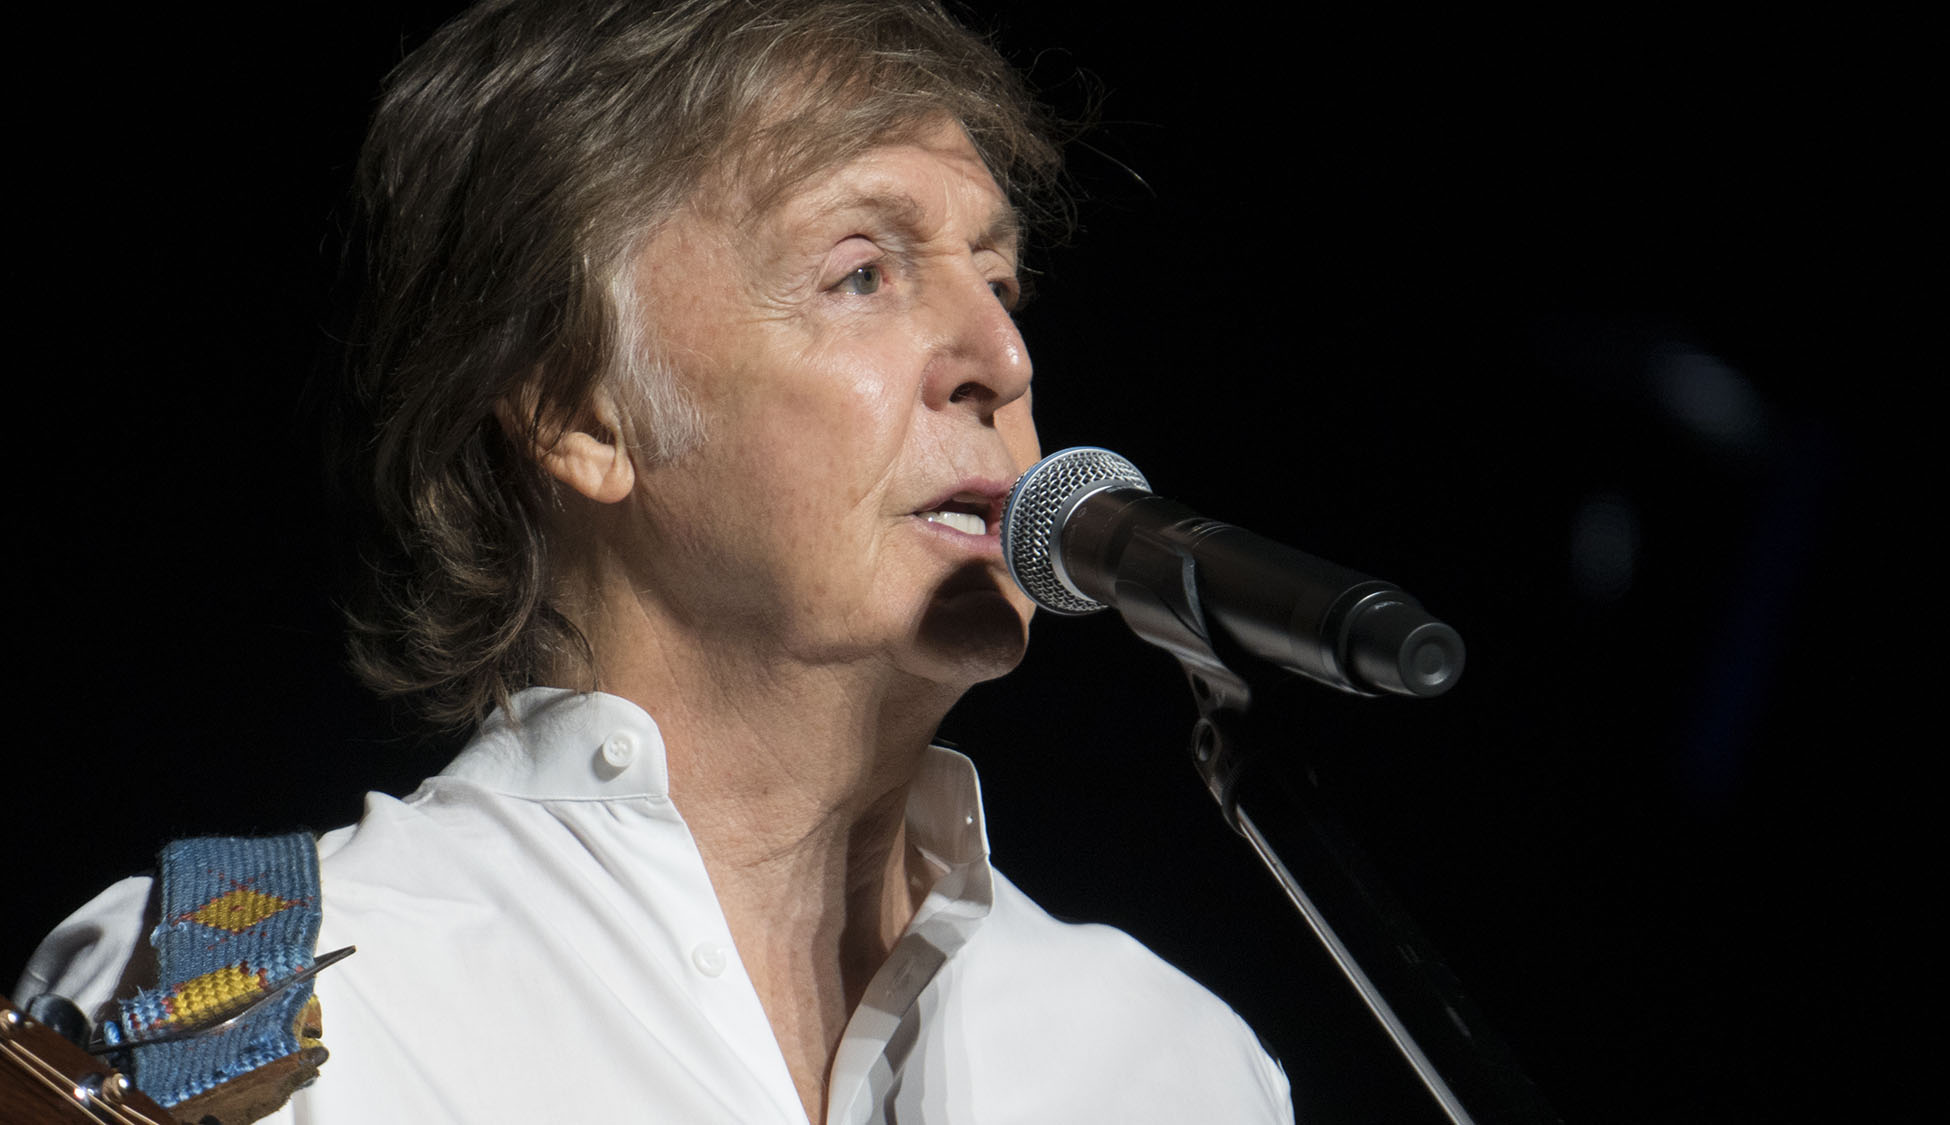 Paul McCartney at the Barclays Center, Brooklyn, NY 9-19-17